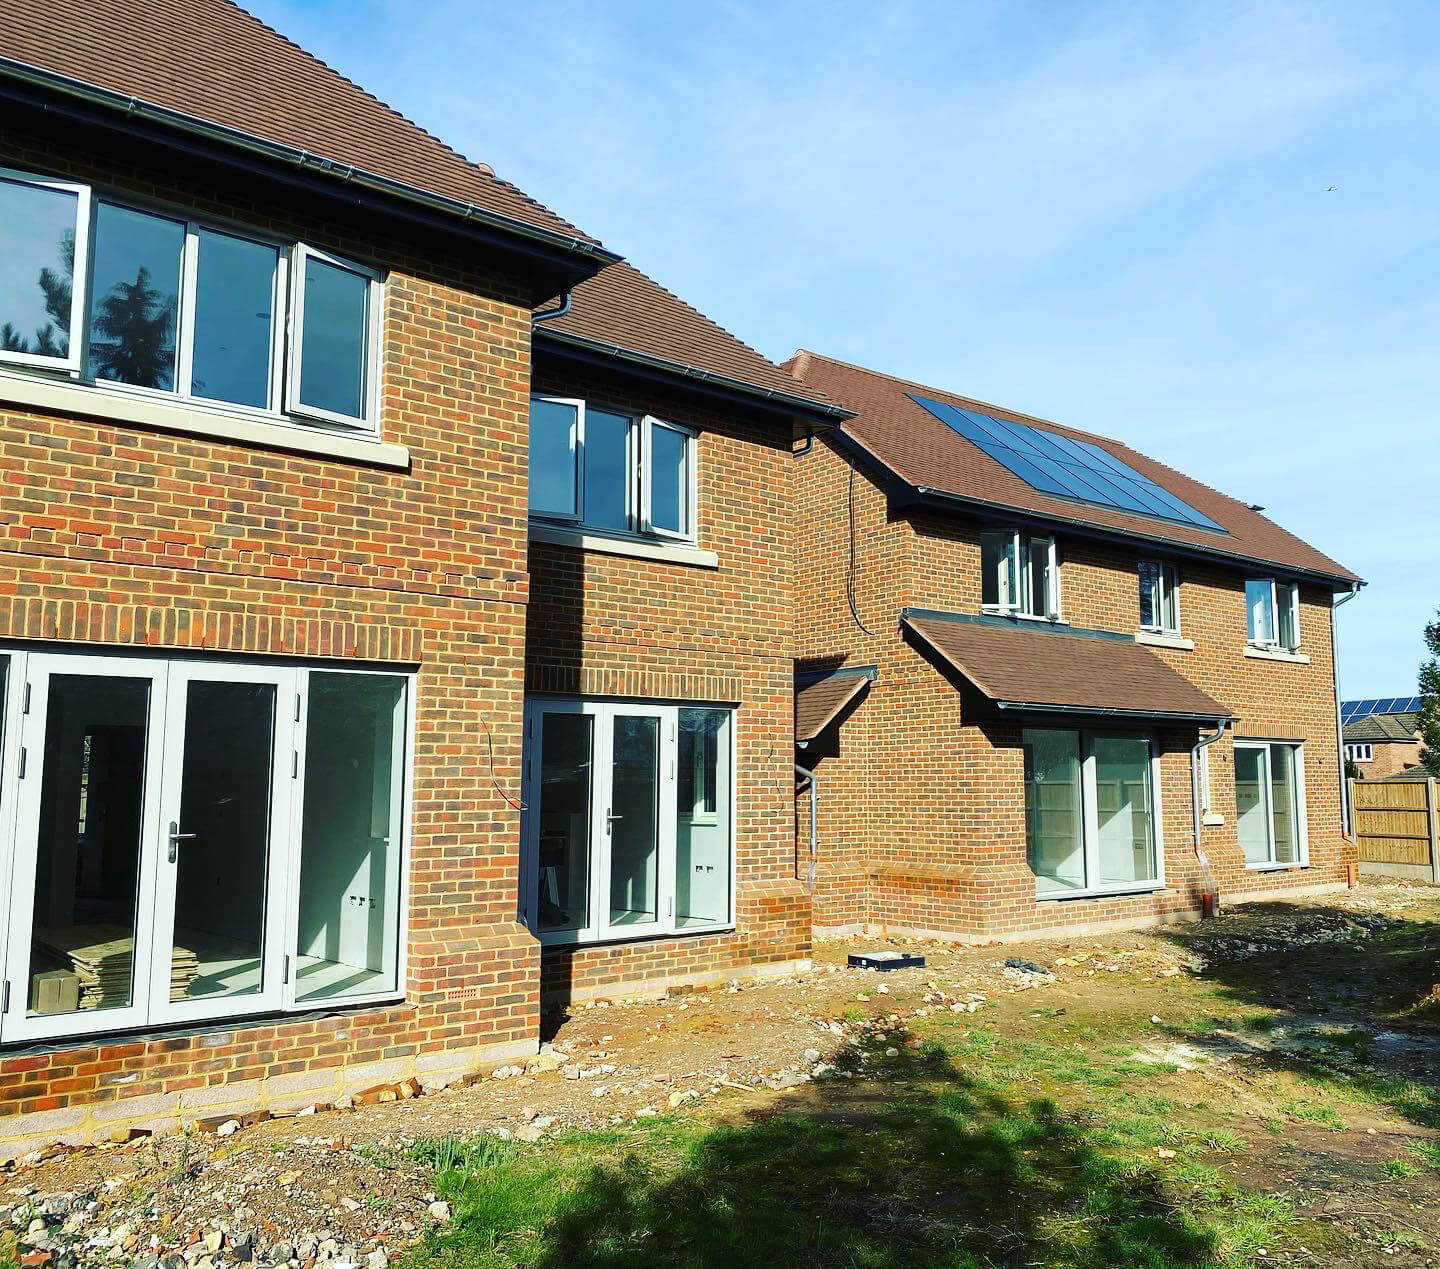 bricklaying projects